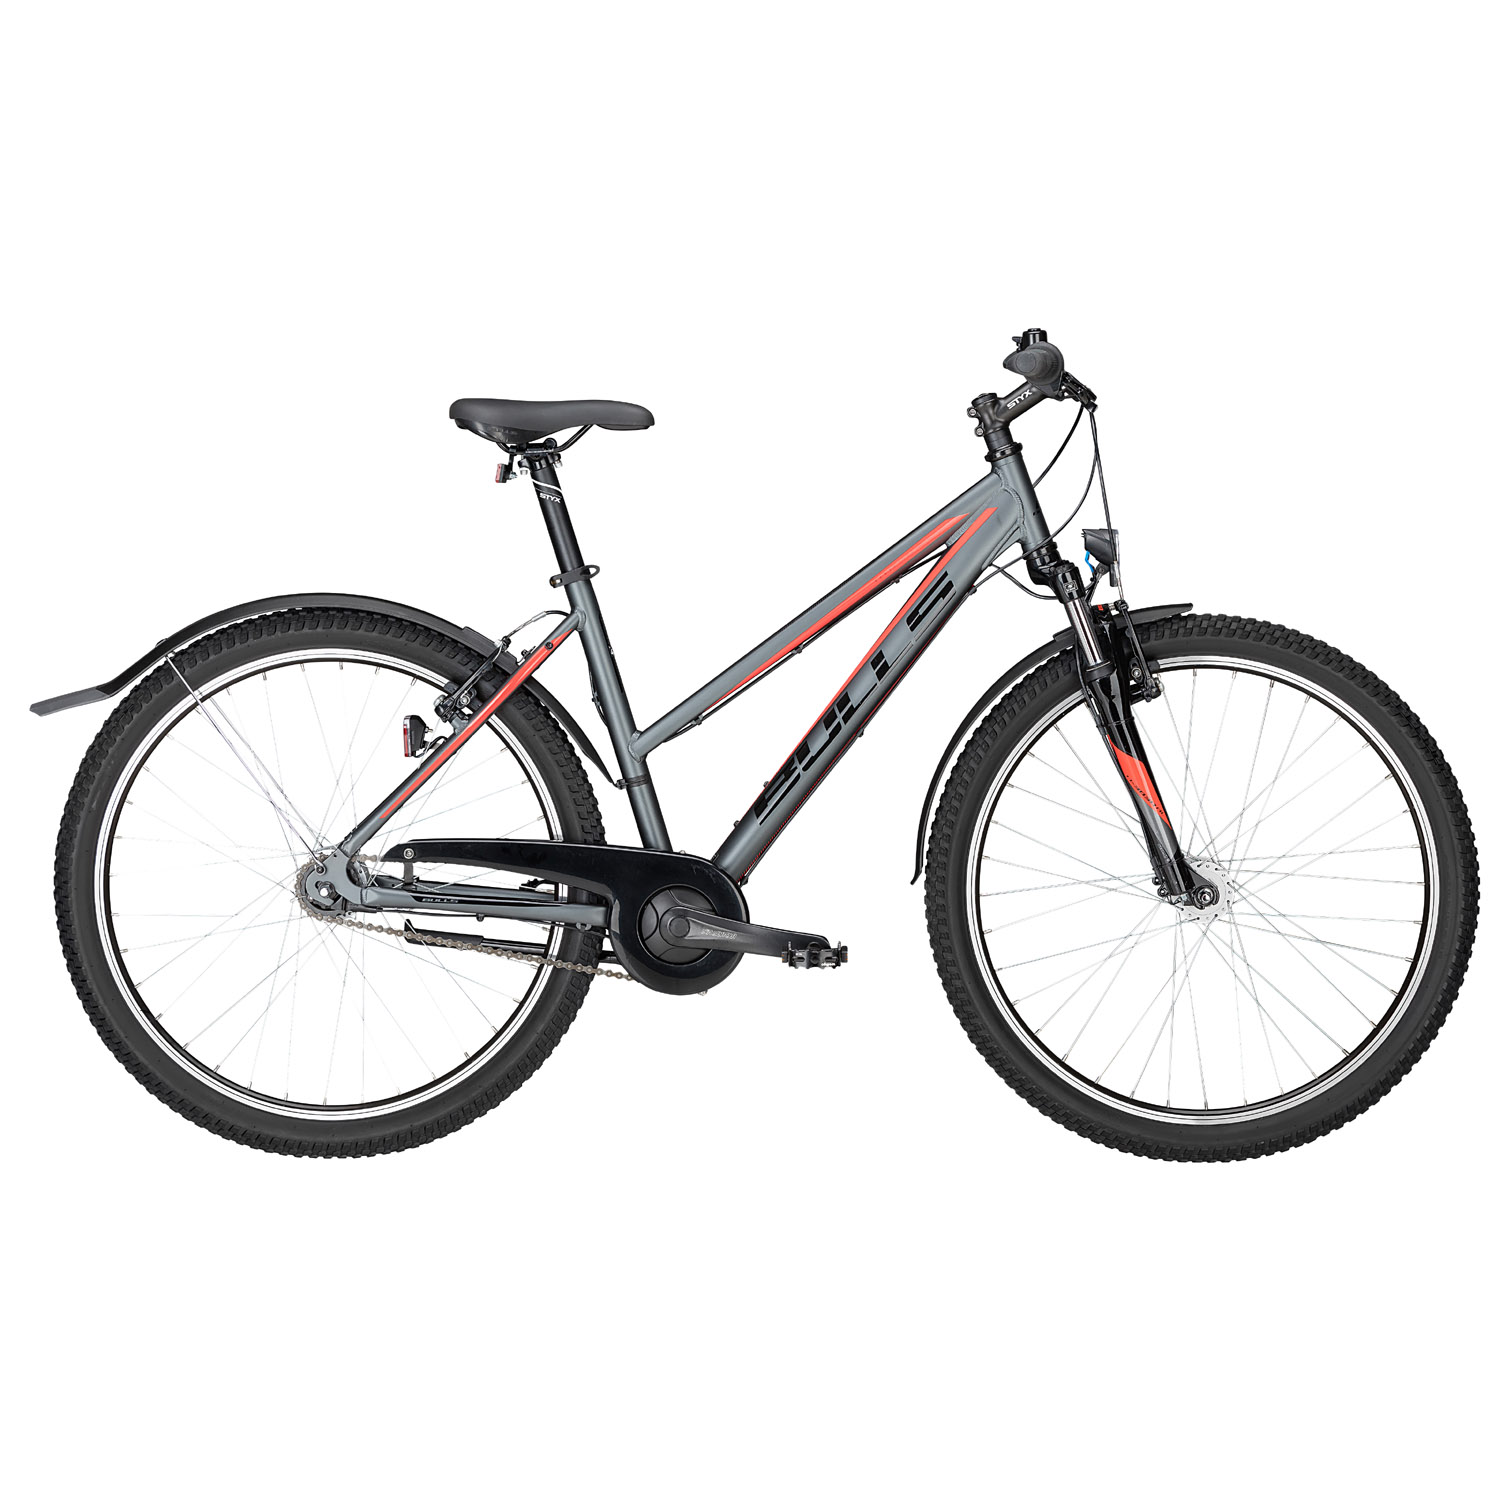 bulls sharptail street 1 mountainbike hardtail 27 5 zoll. Black Bedroom Furniture Sets. Home Design Ideas